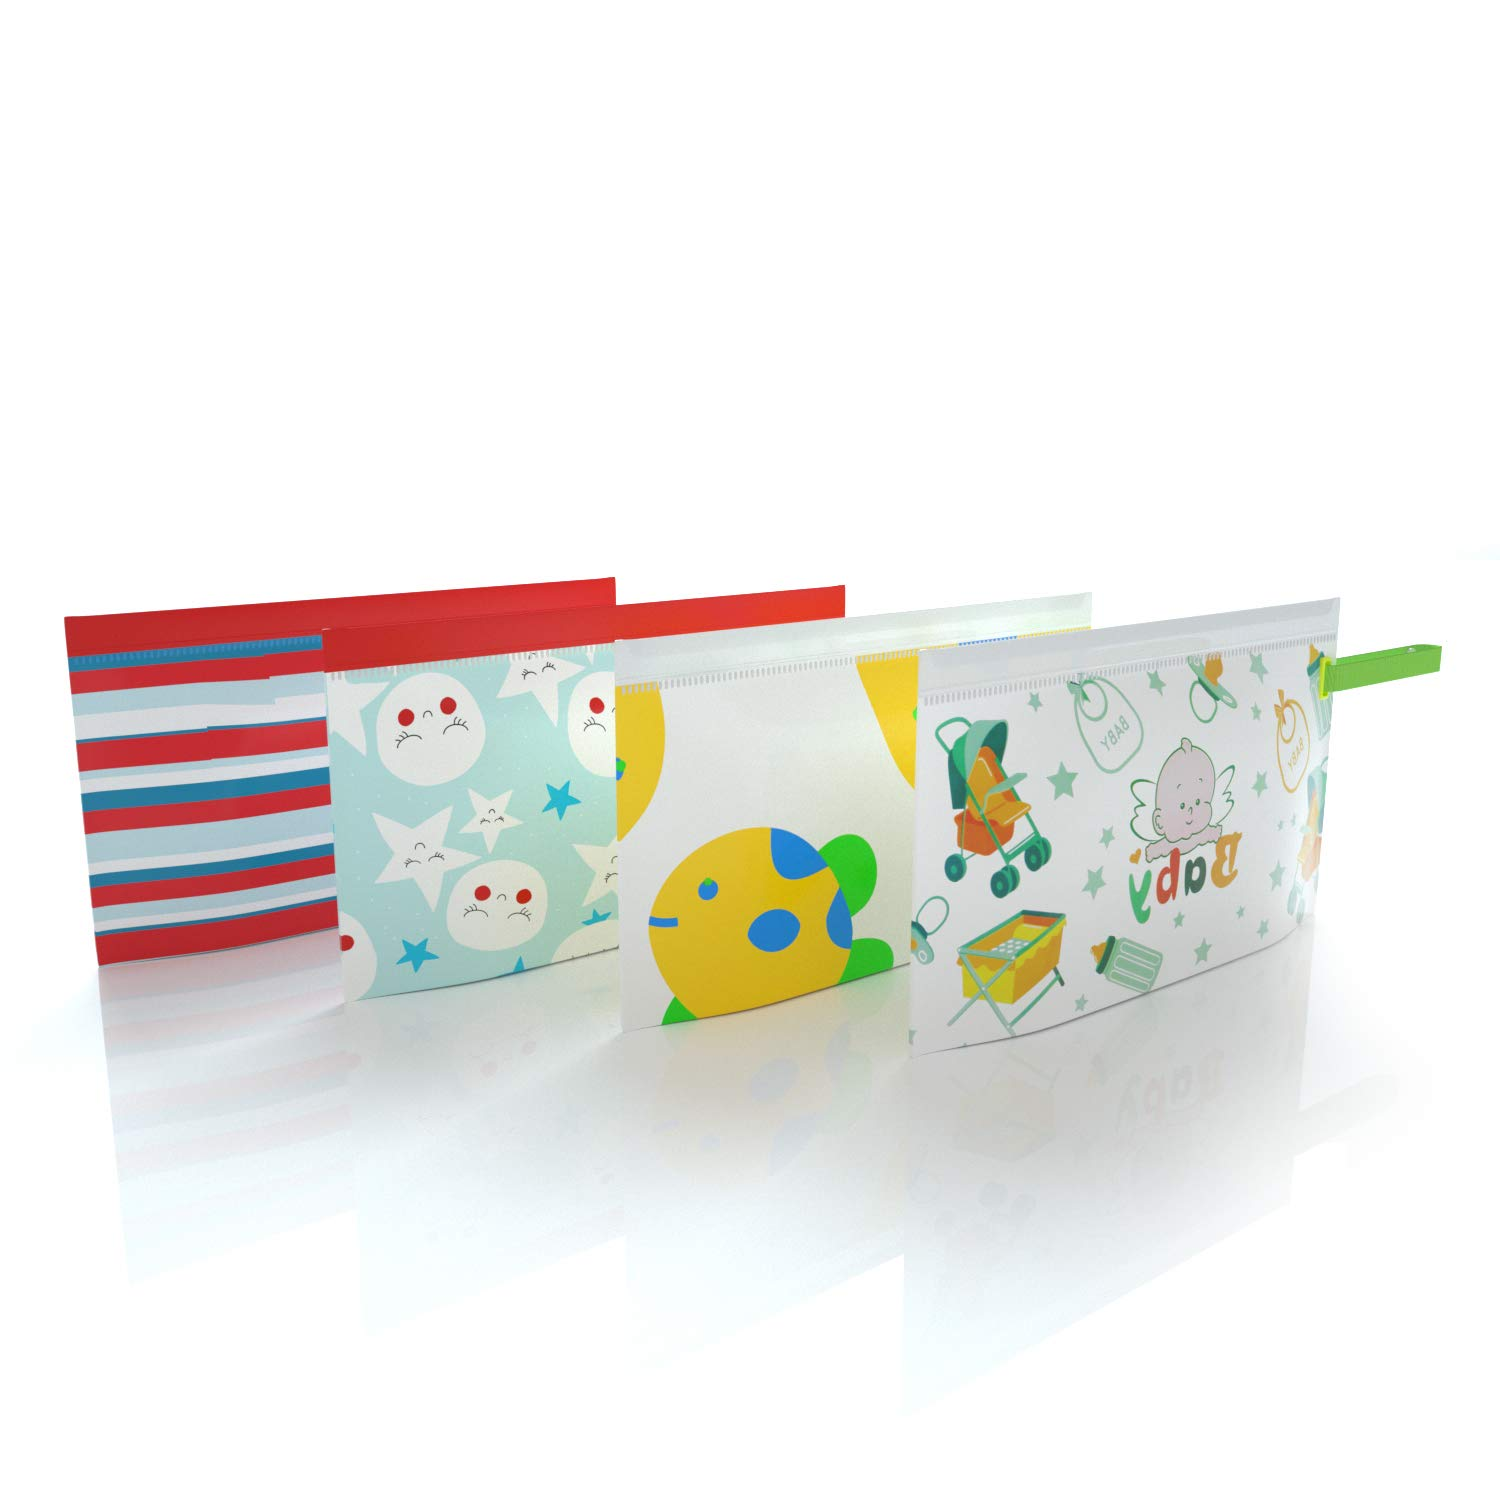 Great for Travel Eco Friendly Wipe Pouches Jiulyning 4PCS Reusable Wet Wipe Pouch Dispenser for Baby Or Personal Wipes